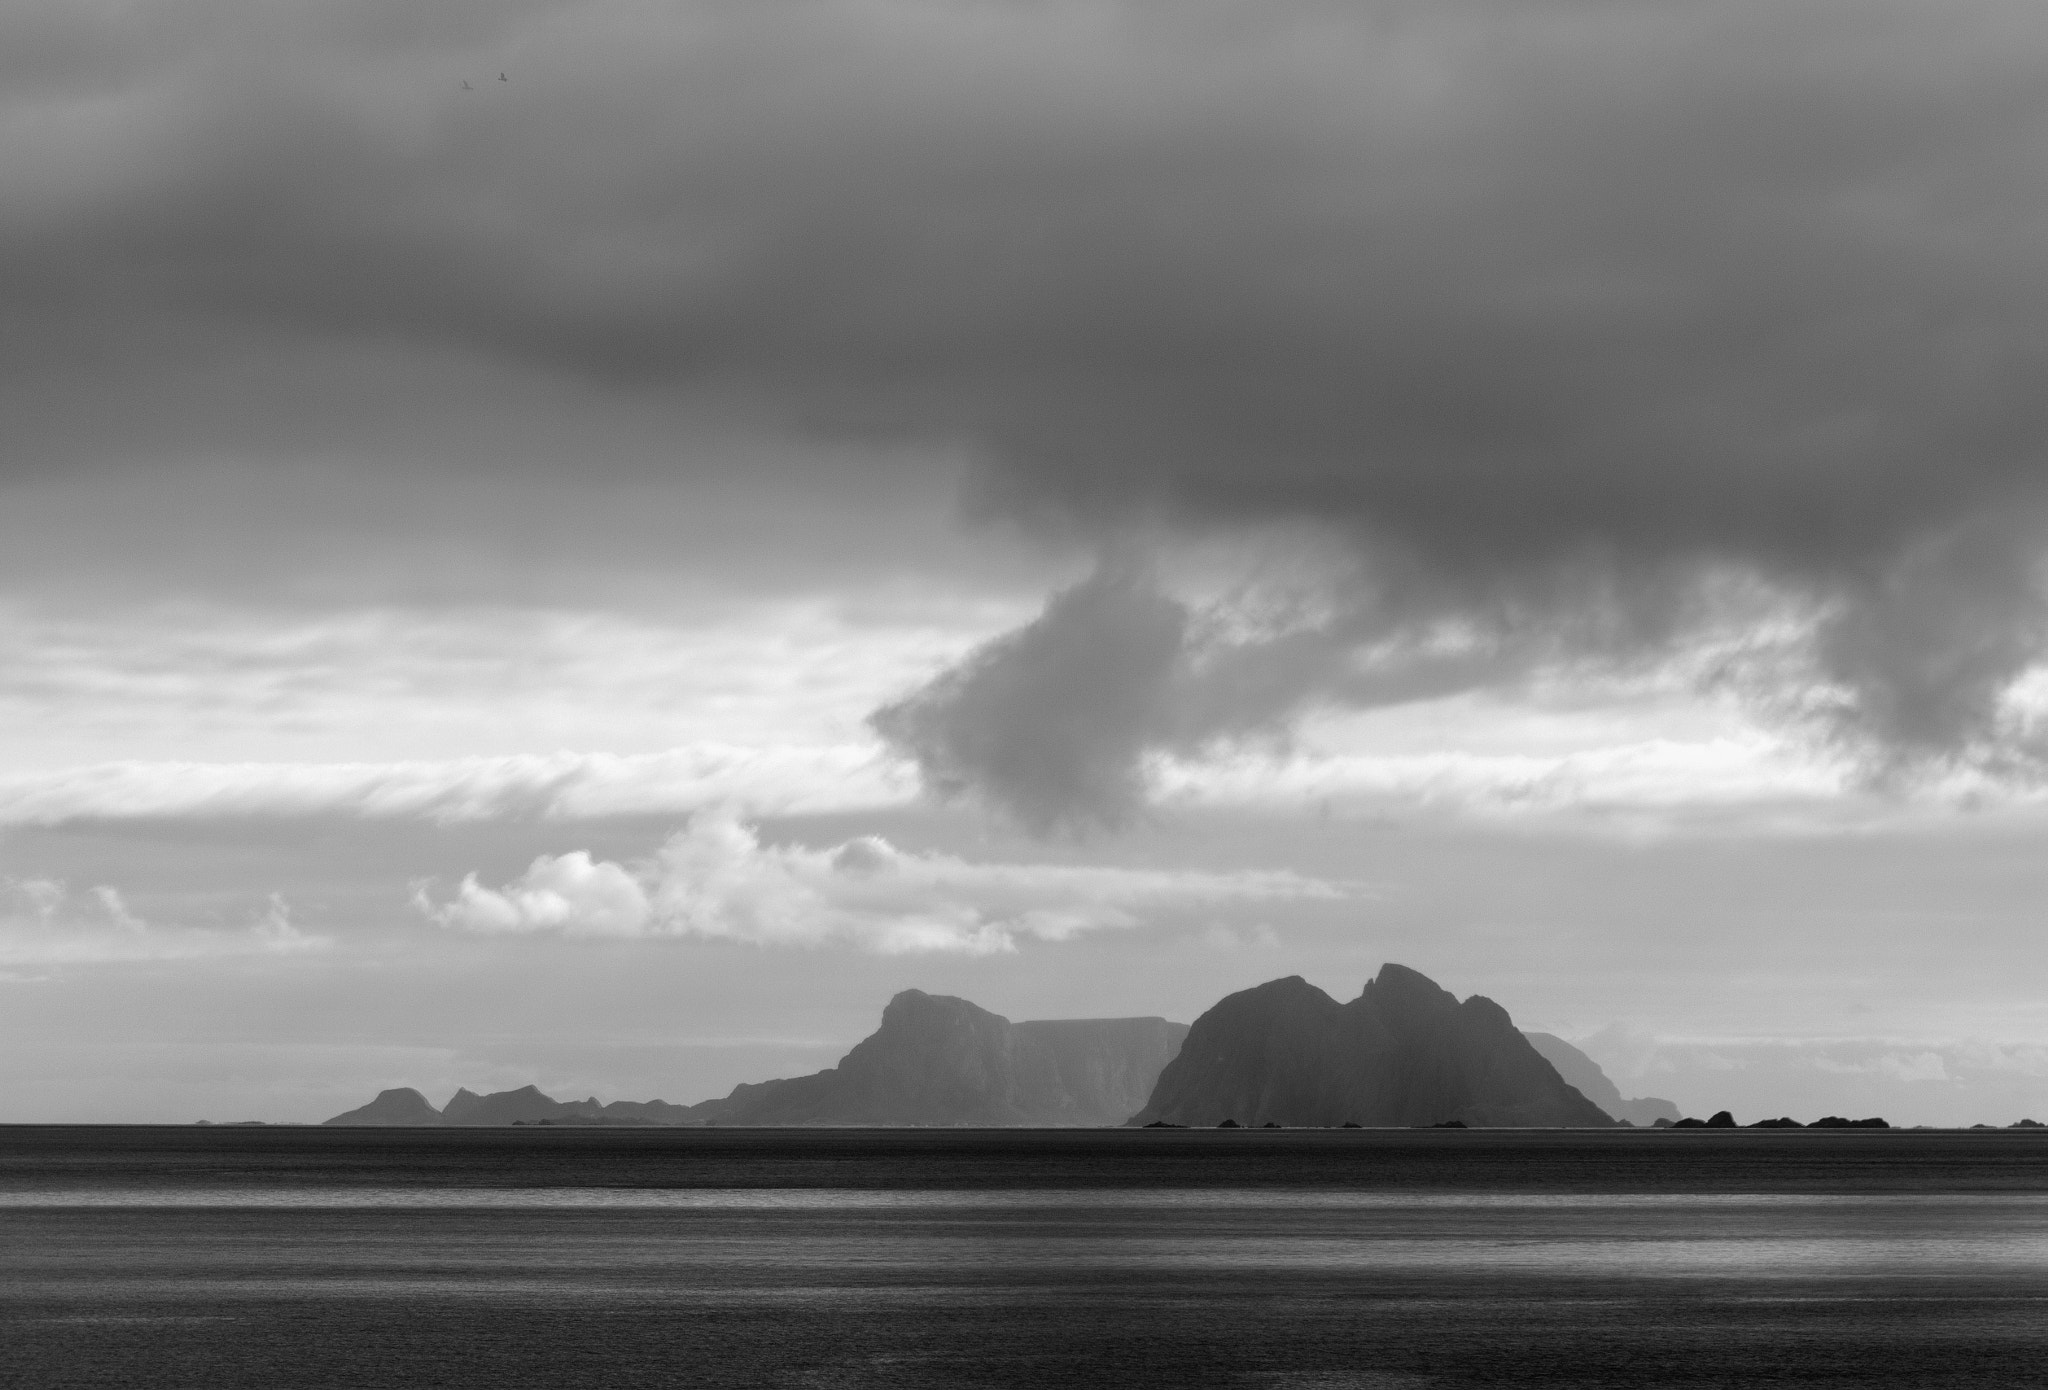 Photograph stormclouds over Værøy by Pieter Rottiers on 500px